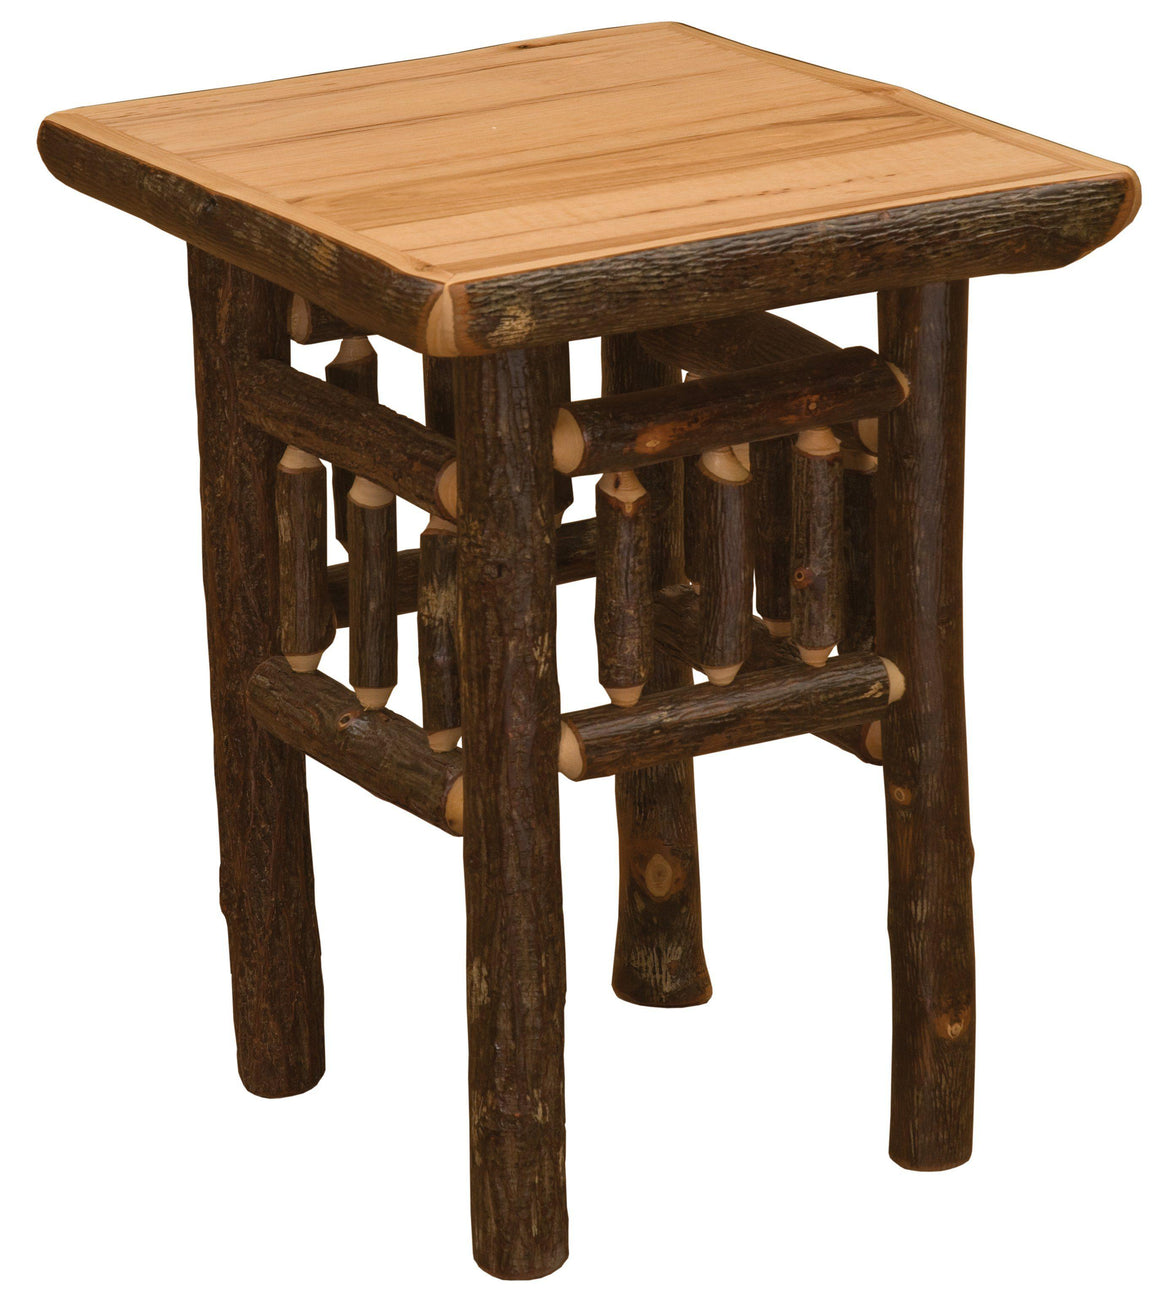 Hickory Log Open End Table - Standard Finish - Rustic Deco Incorporated